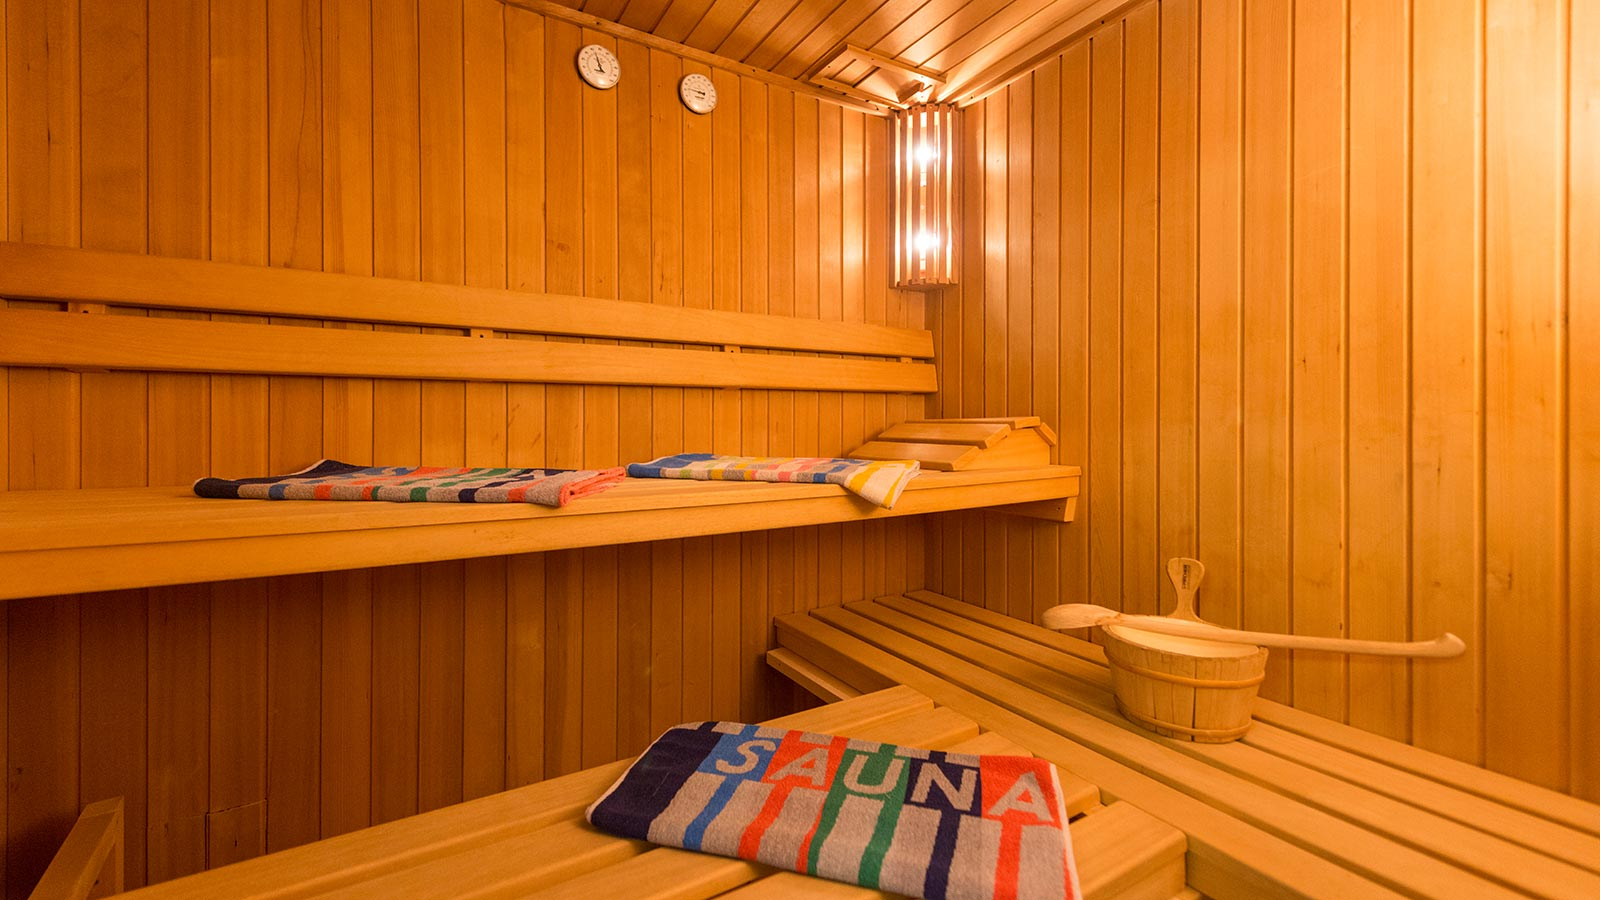 Finnish sauna in wellness area to relax mind and body